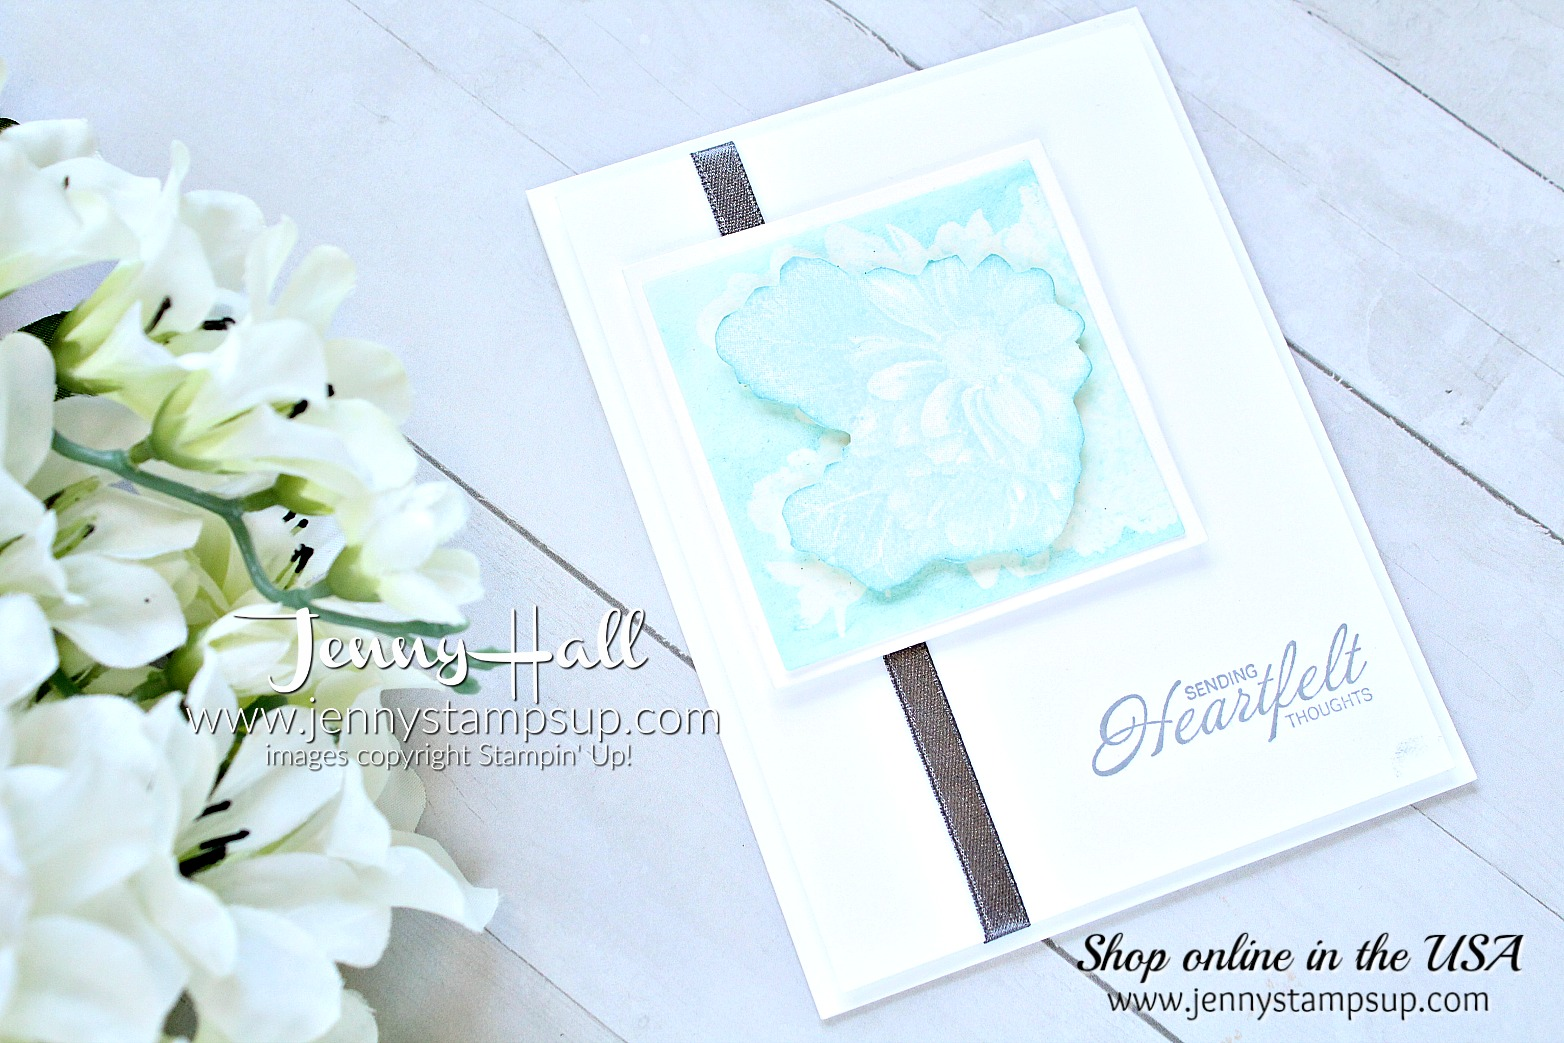 Heartfelt Blooms photo negative card created by Jenny Hall at www.jennyhalldesign.com for #heartfeltblooms #photonegative #paperembossing #sympathycard #2018saleabration #stampinup #stamping #jennyhall #jennyhalldesign #jennyhallstampinup #jennystampsup #temptingturquoise #stampinkpaperchallenge #crafts #lifestyle #youtuber #stamping